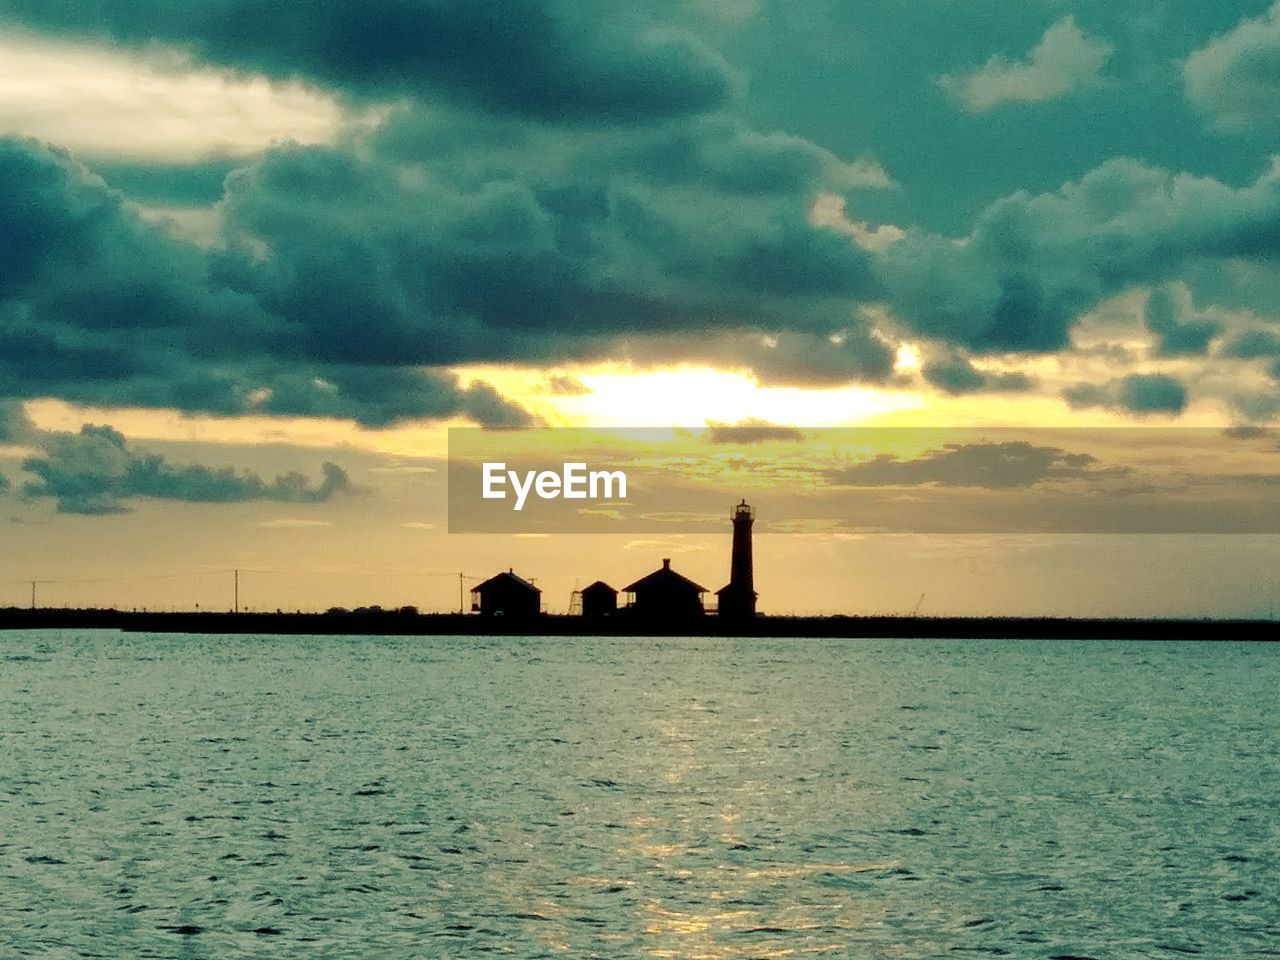 sky, cloud - sky, sunset, water, scenics - nature, beauty in nature, sea, silhouette, waterfront, nature, no people, tranquility, orange color, tranquil scene, architecture, built structure, idyllic, outdoors, sunlight, horizon over water